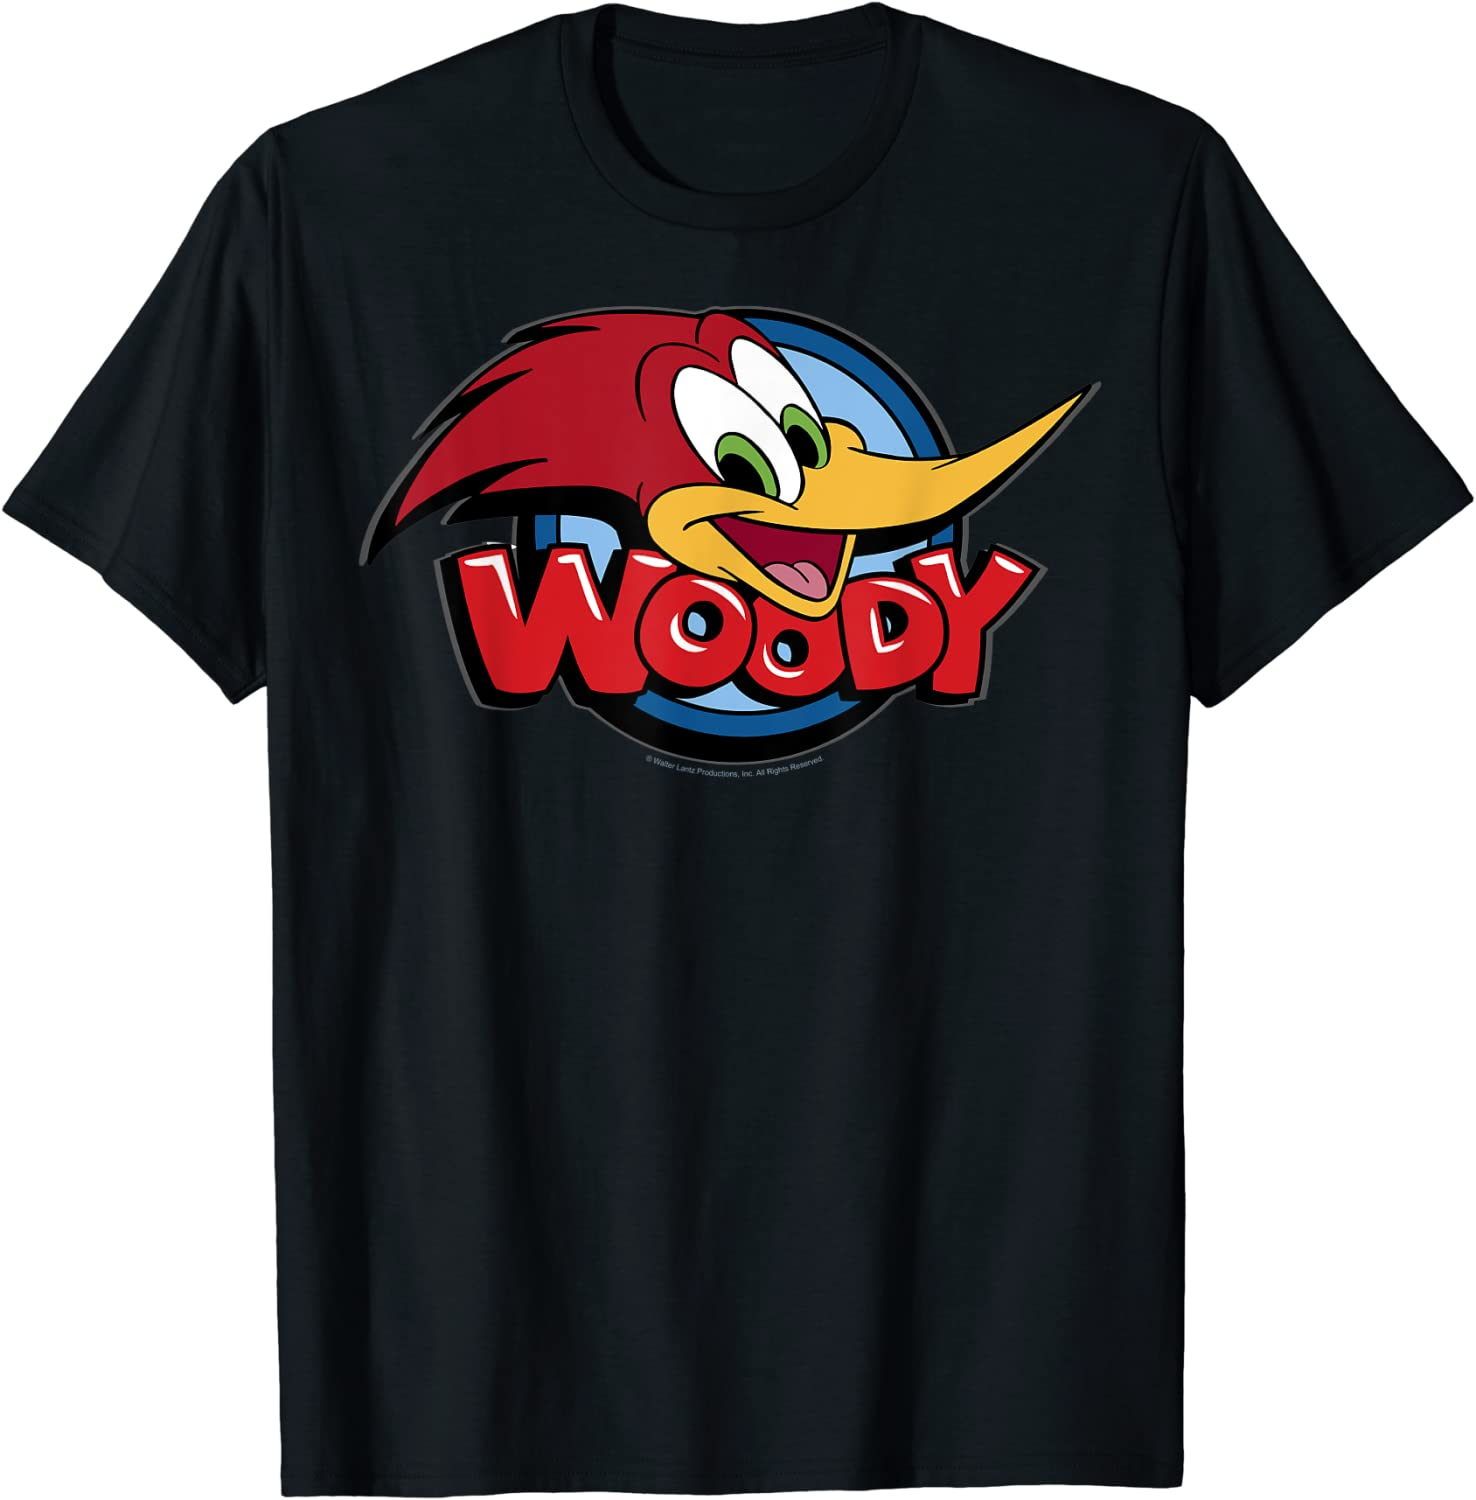 Woody Woodpecker Nippon regular agency Large T-Shirt Don't miss the campaign Logo Face